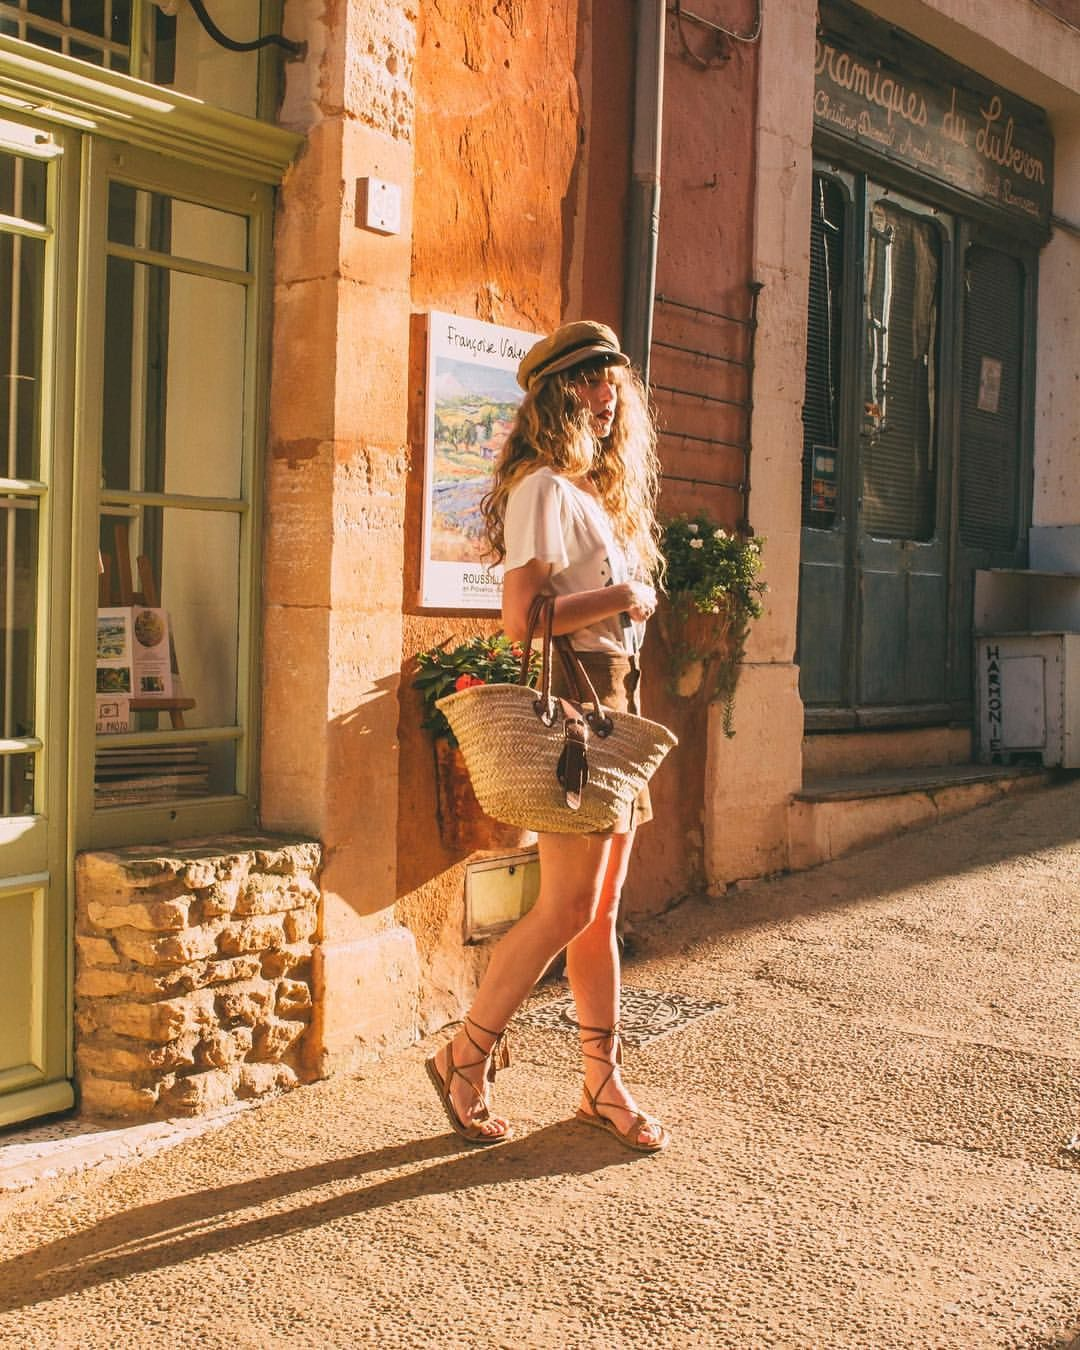 456 отметок «Нравится», 24 комментариев — Alexe Bec 🇫🇷 (@alexebec) в Instagram: «Casually wandering down the streets of my favorite village located in the south of France a few…»